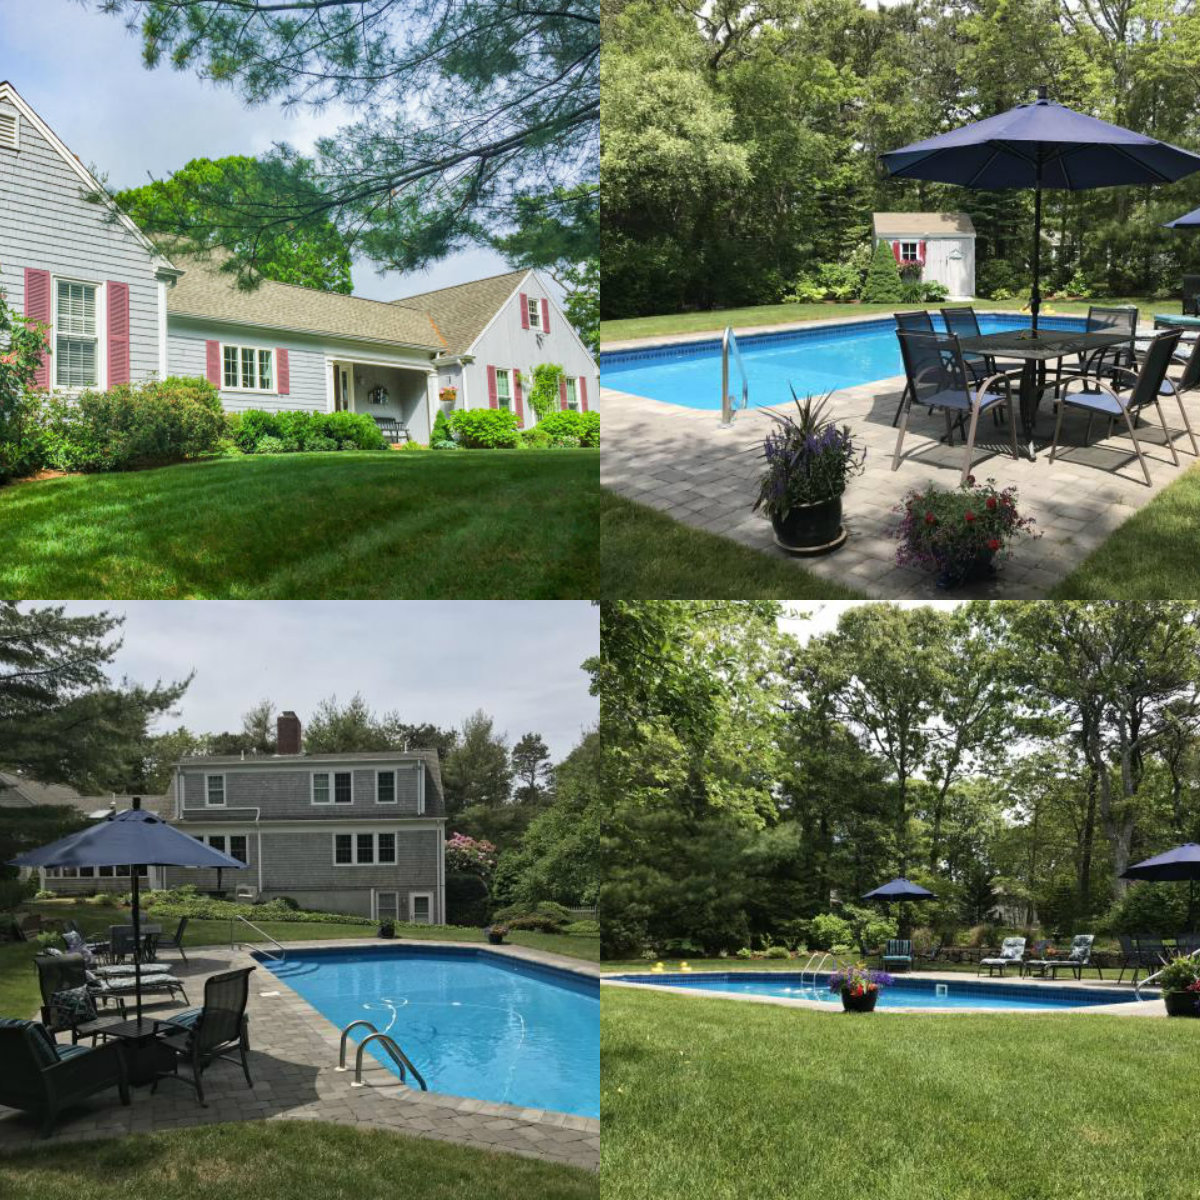 Images of pool at 324 Deer Meadow Lane in Chatham Cape Cod MA